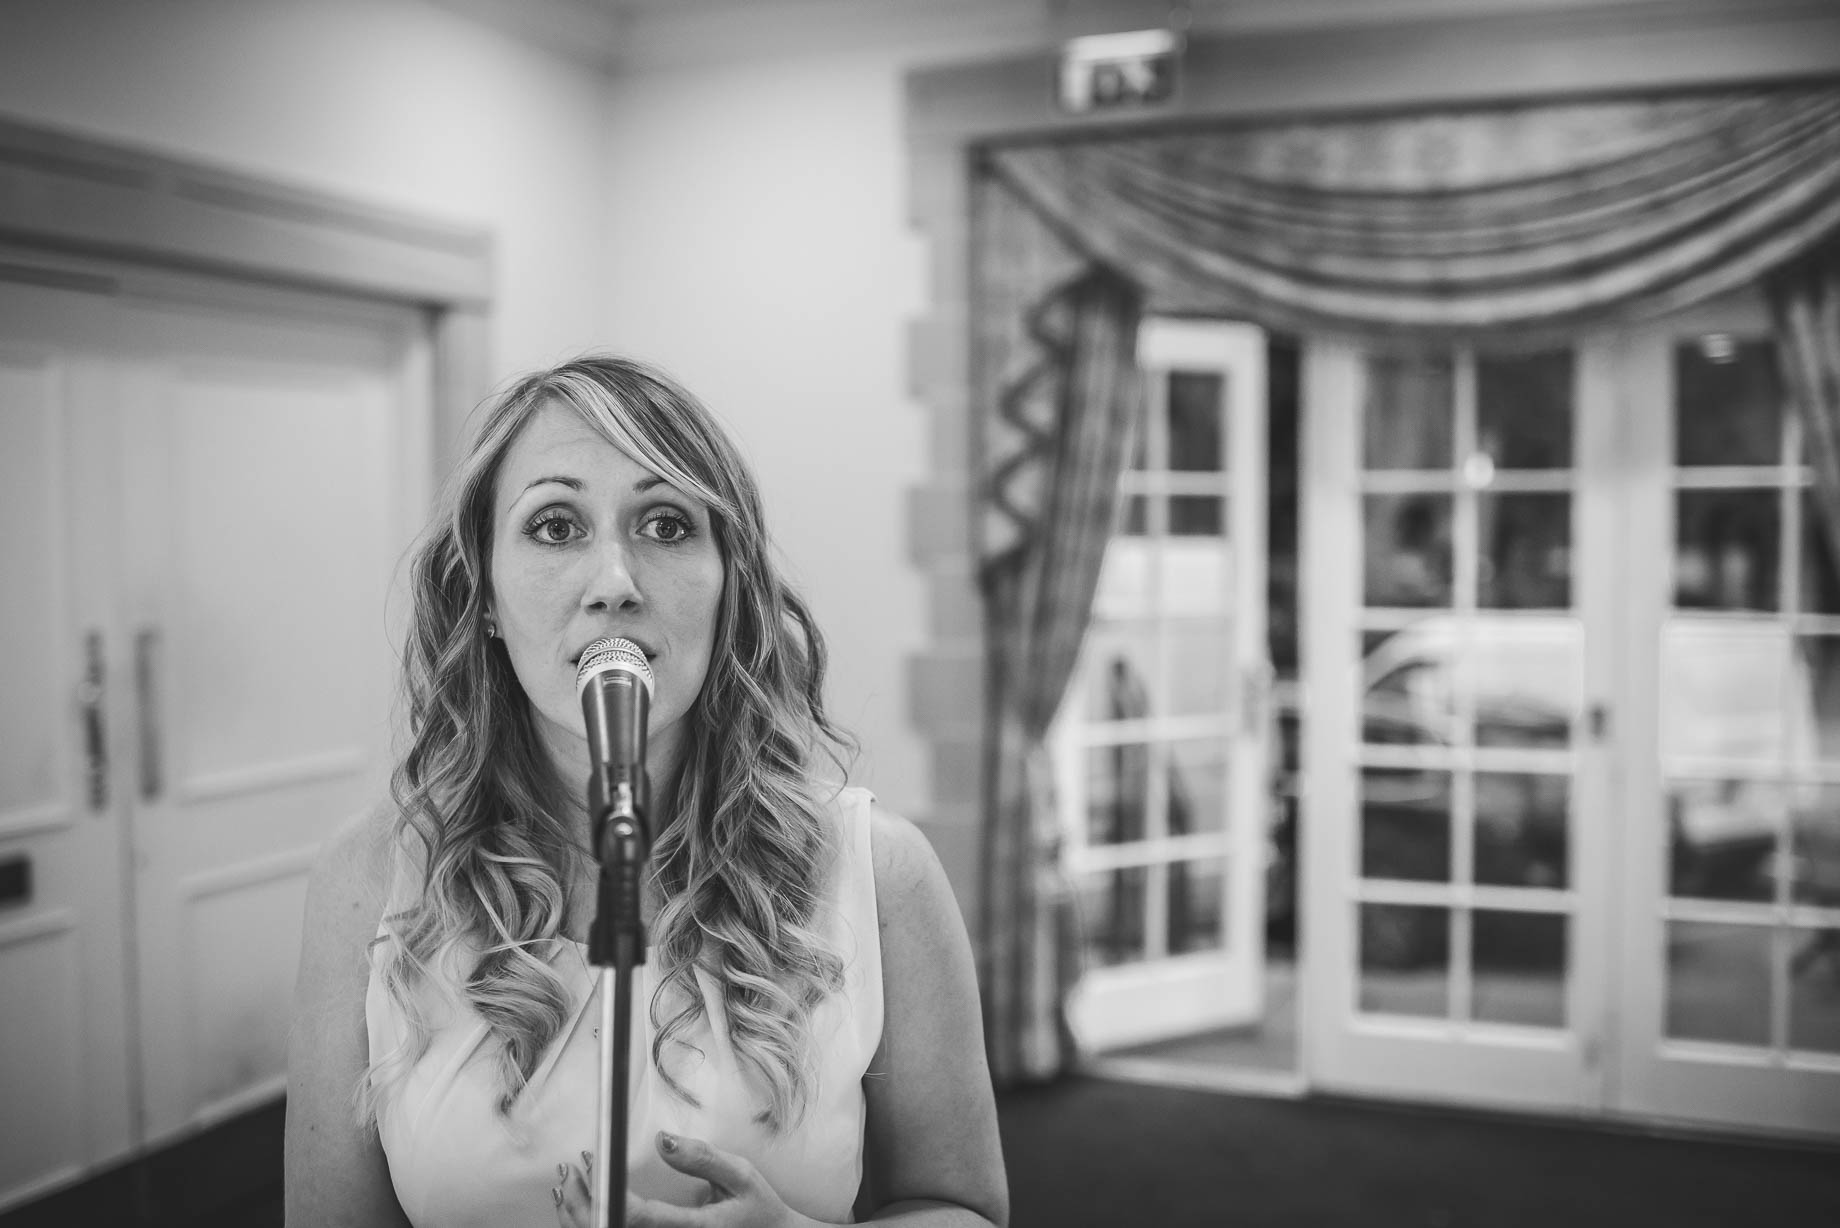 Luton Hoo wedding photography by Guy Collier Photography - Lauren and Gem (174 of 178)